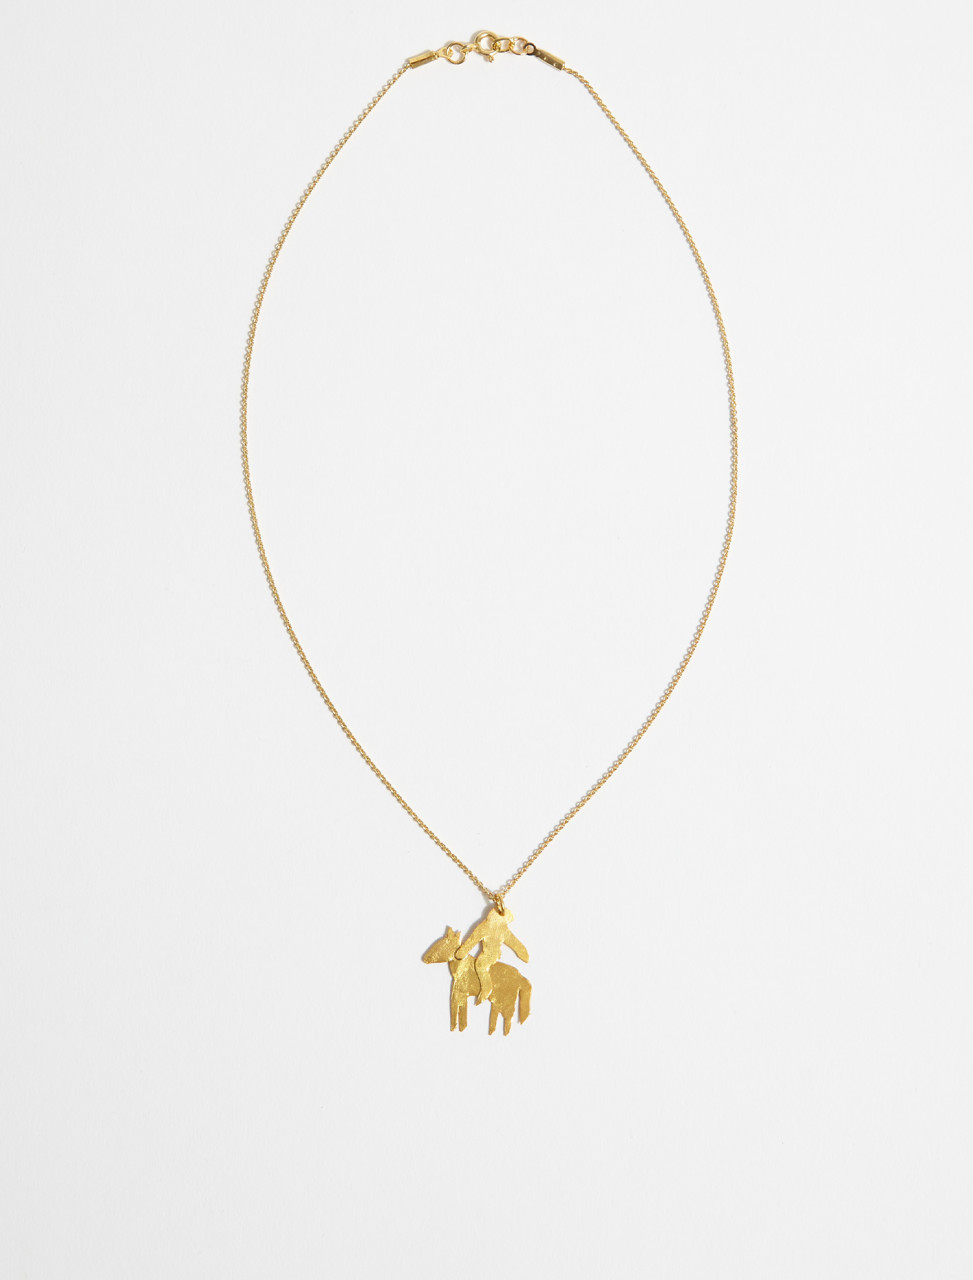 1000734 APRES SKI JINETE B CHEVALIER CHARM NECKLACE IN GOLD